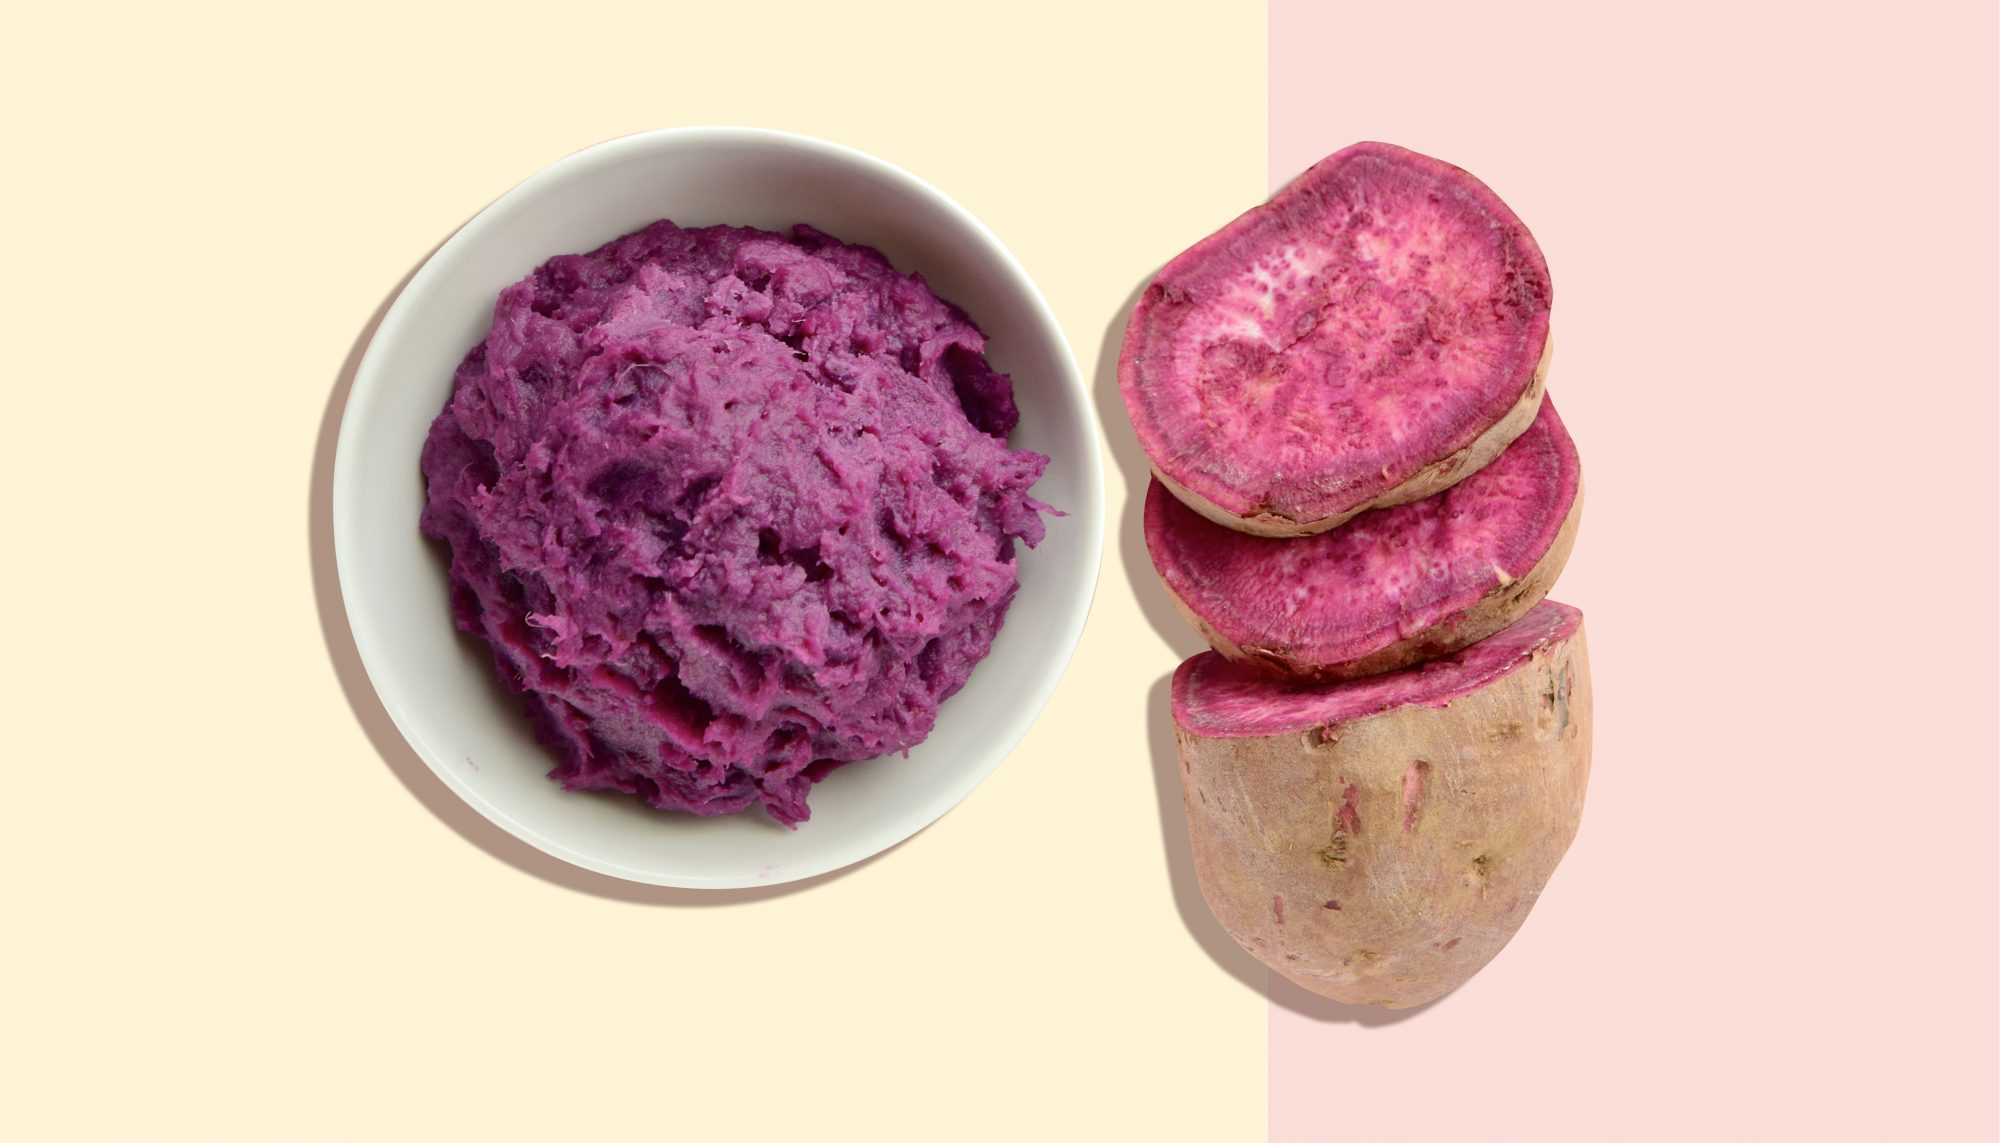 What Is An Ube And Why Is It So Trendy Right Now?